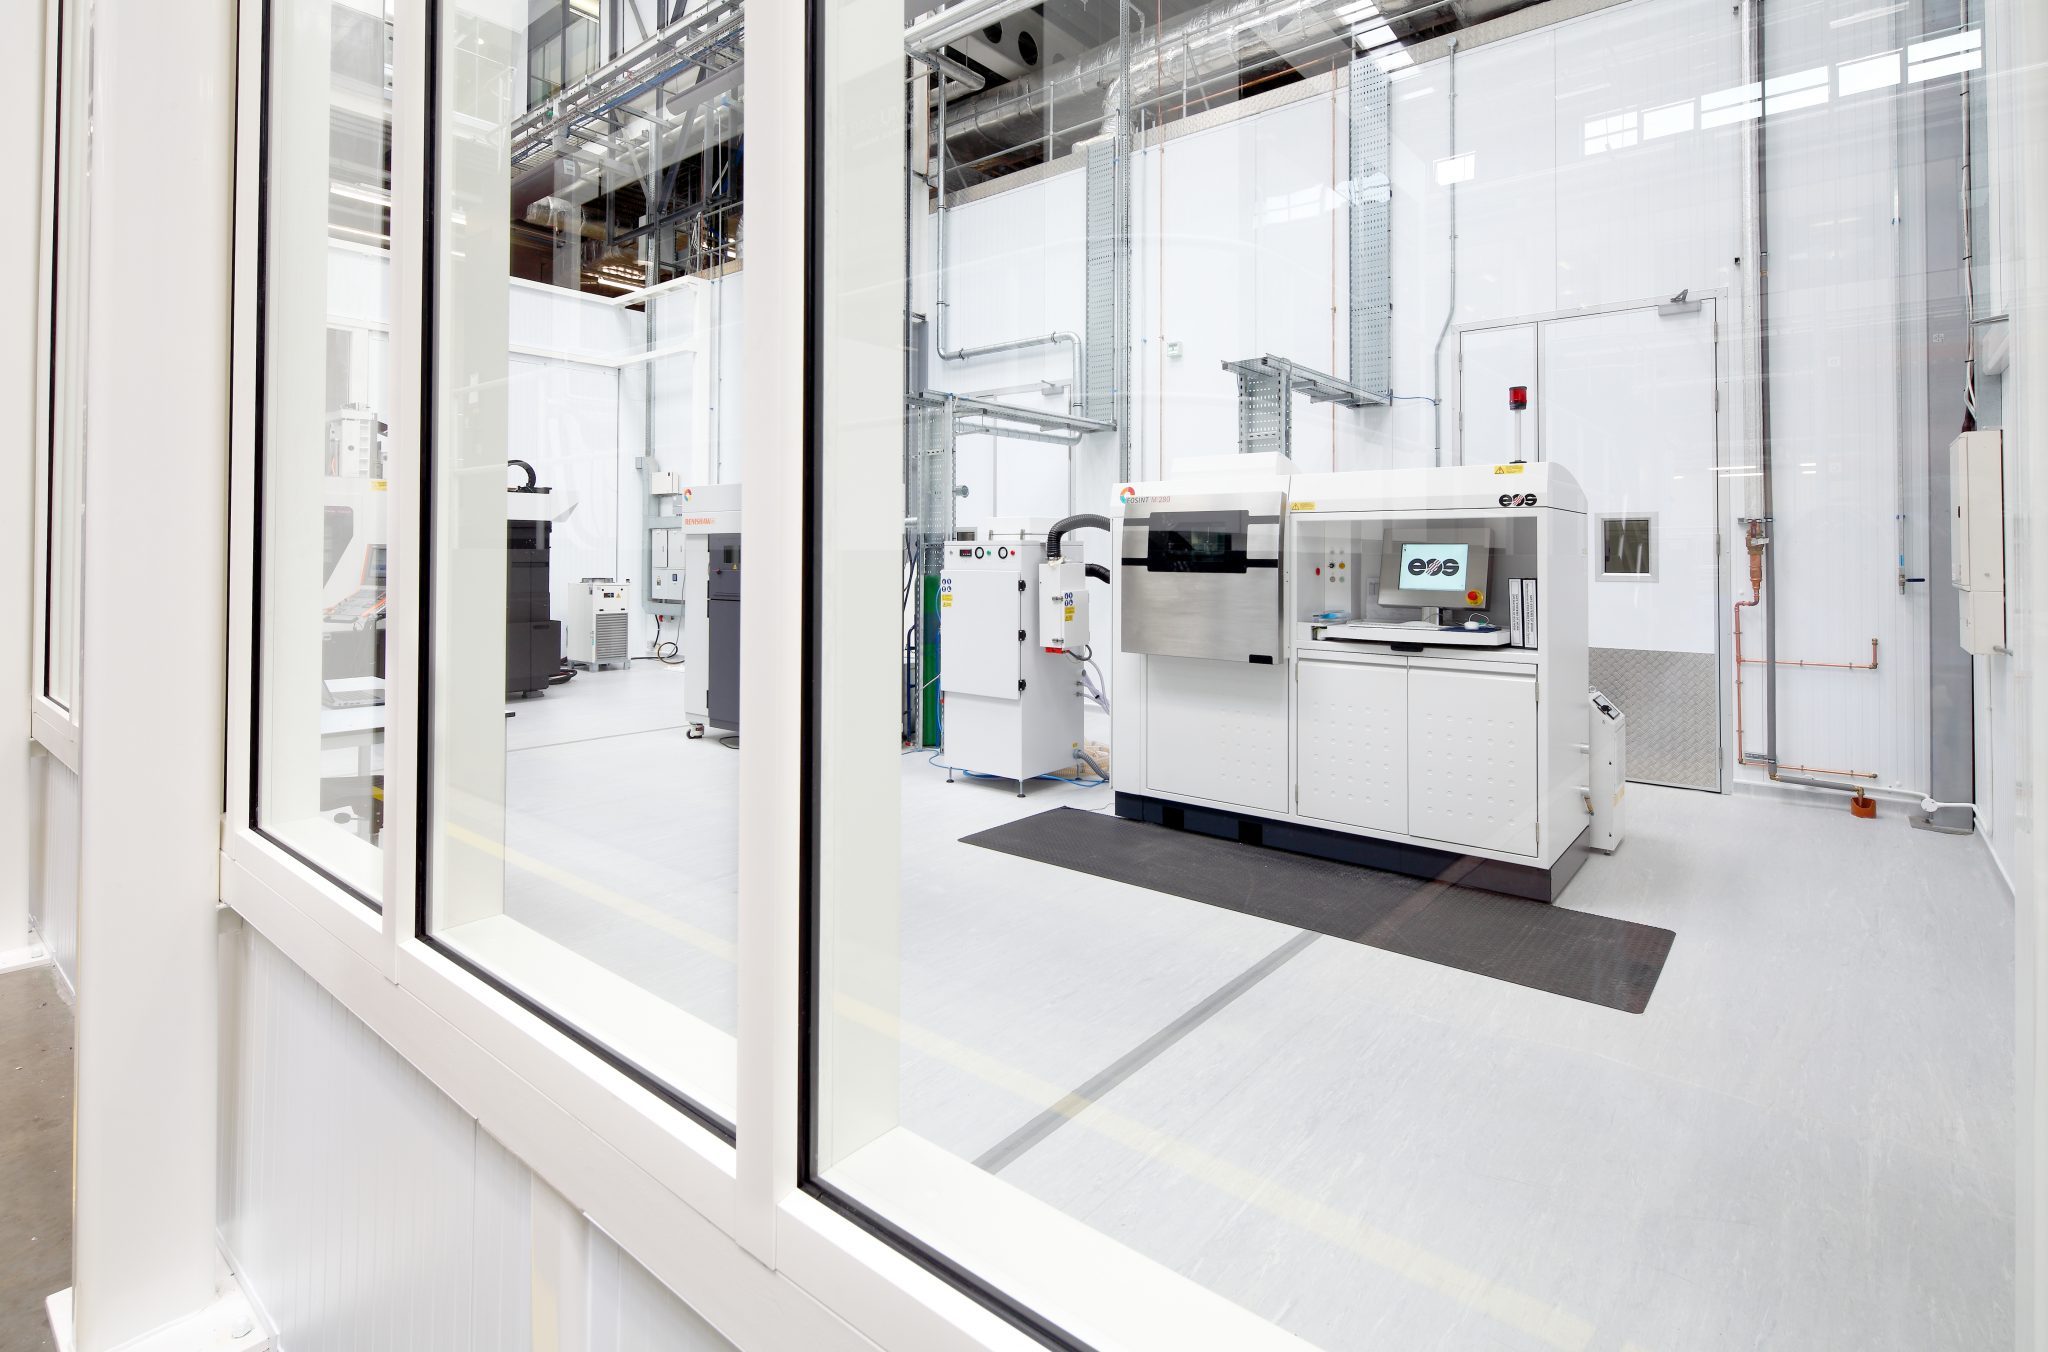 Inside the National Centre for Additive Manufacturing at Coventry's MTC. Photo via The MTC